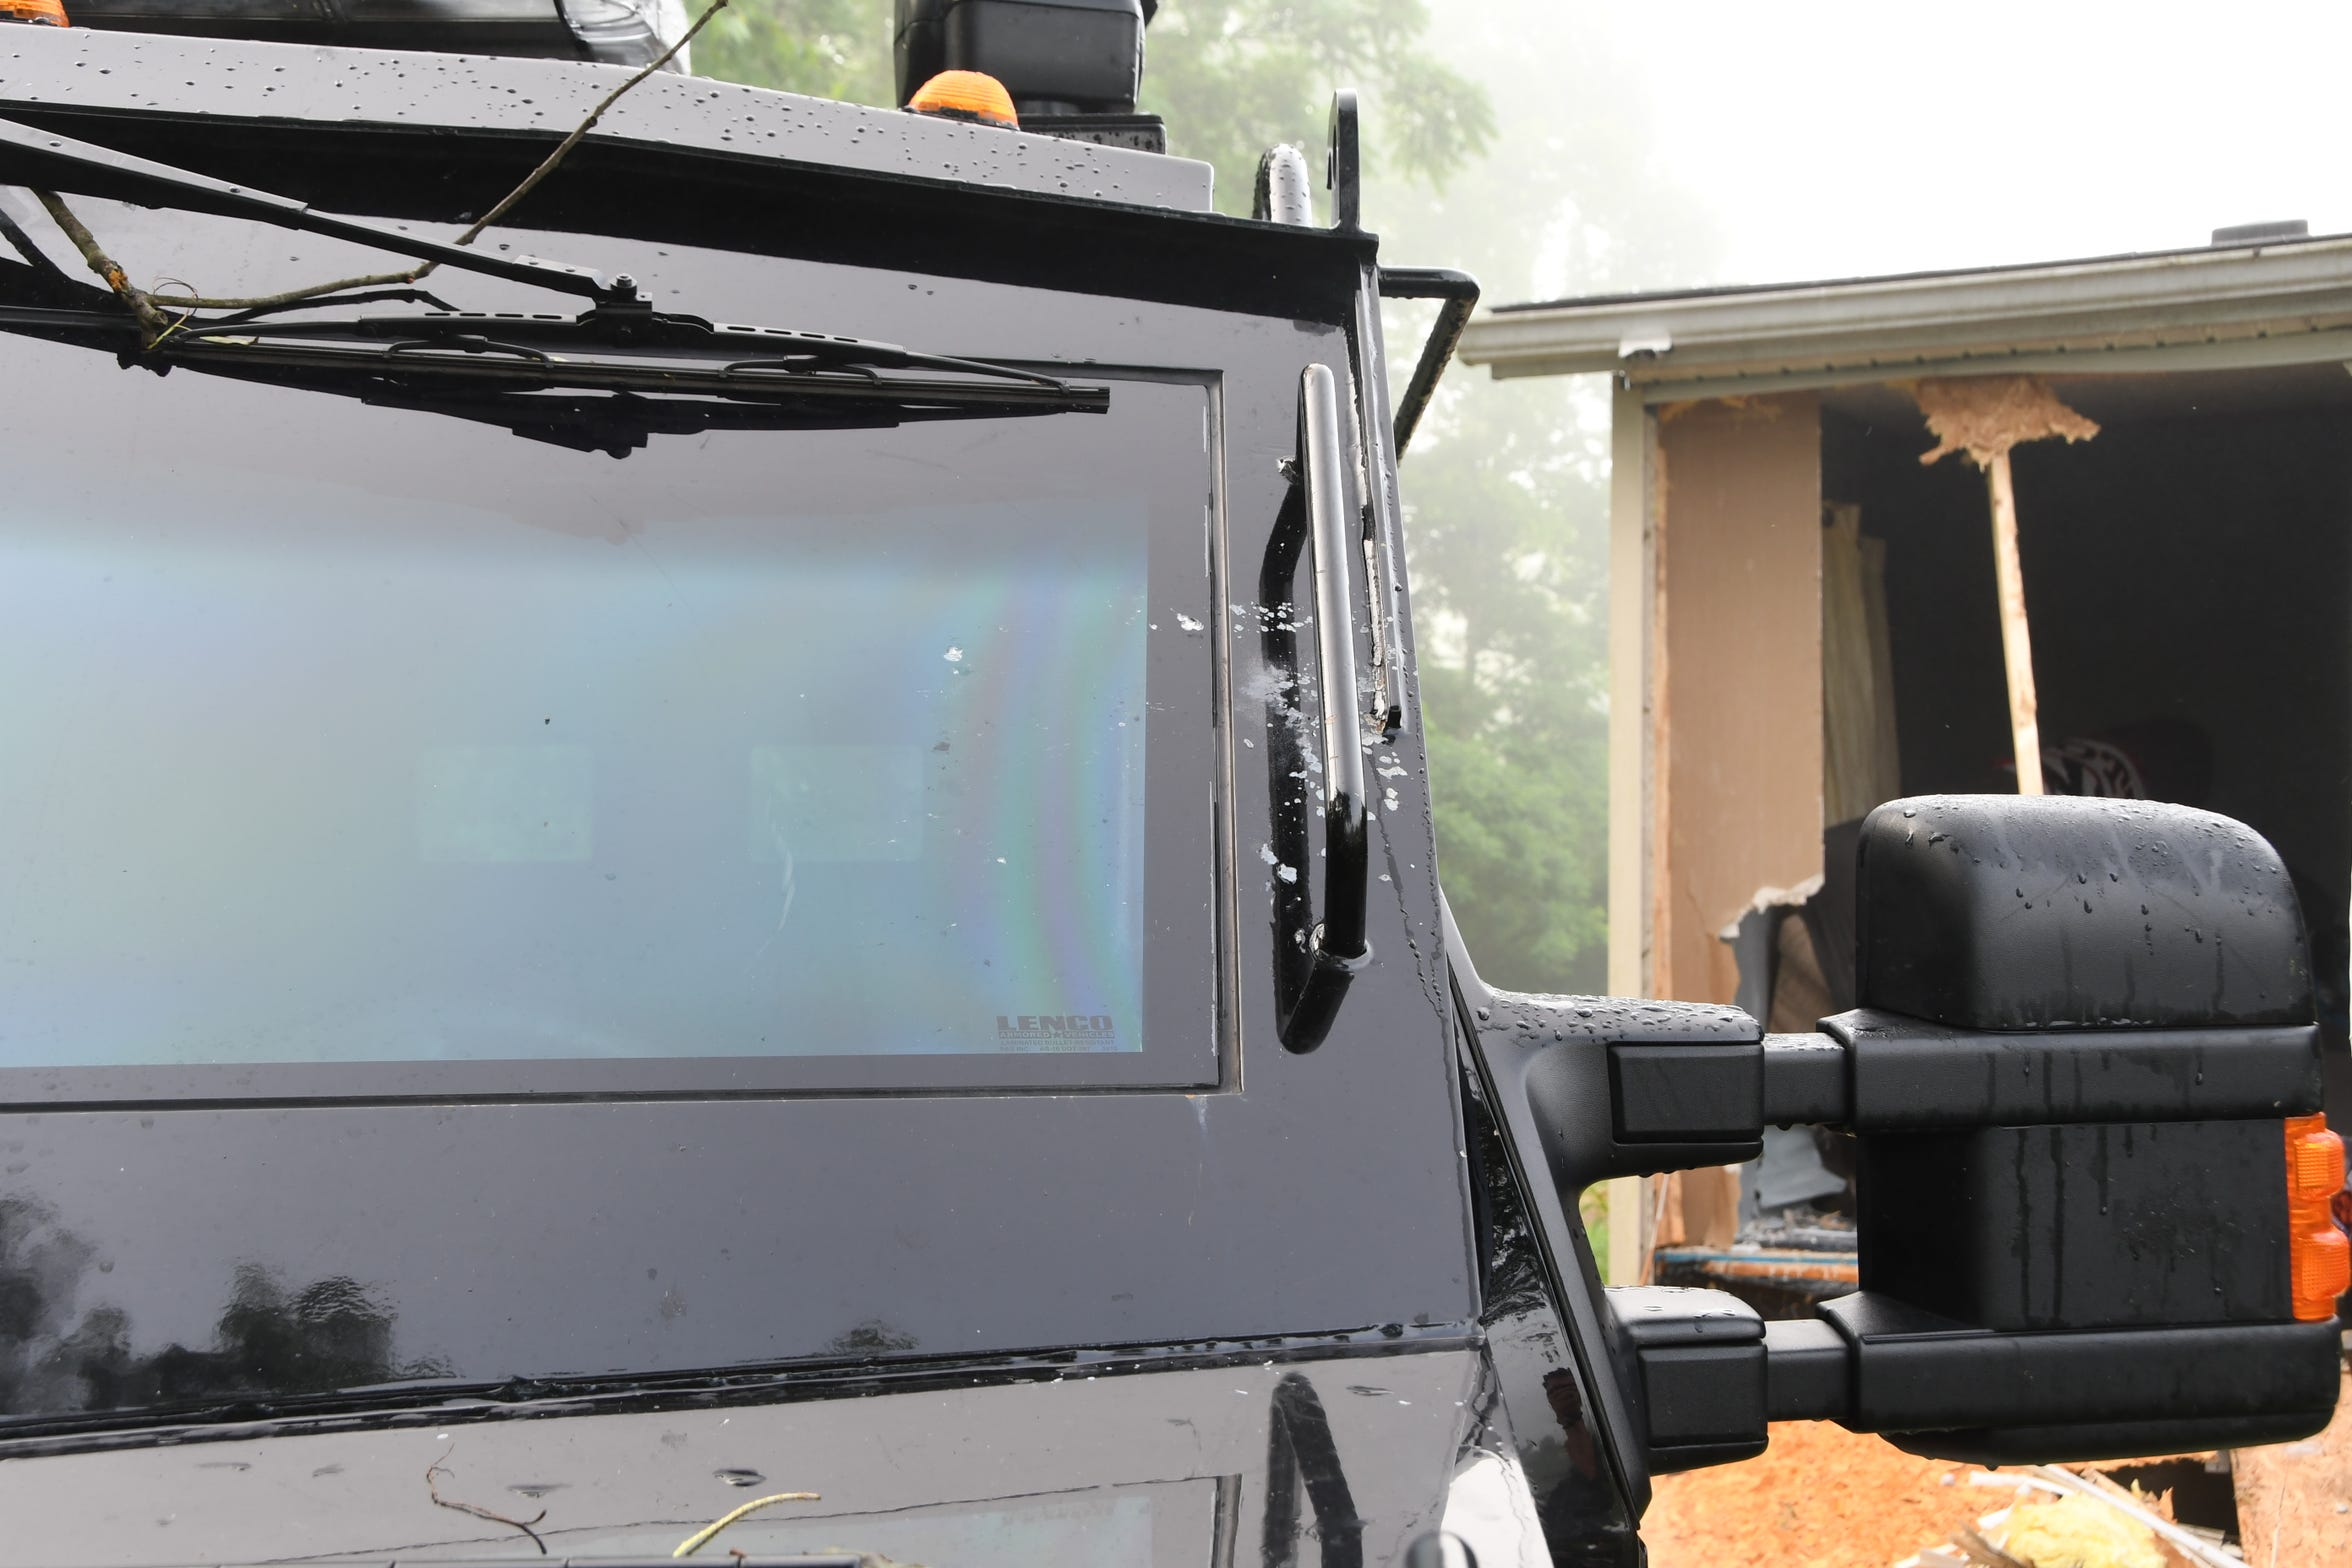 One bullet fired at Franklin County SWAT officers during a June 13 standoff at 919 Wynn Road, Piketon, struck the windshield of a BearCat armored vehicle.